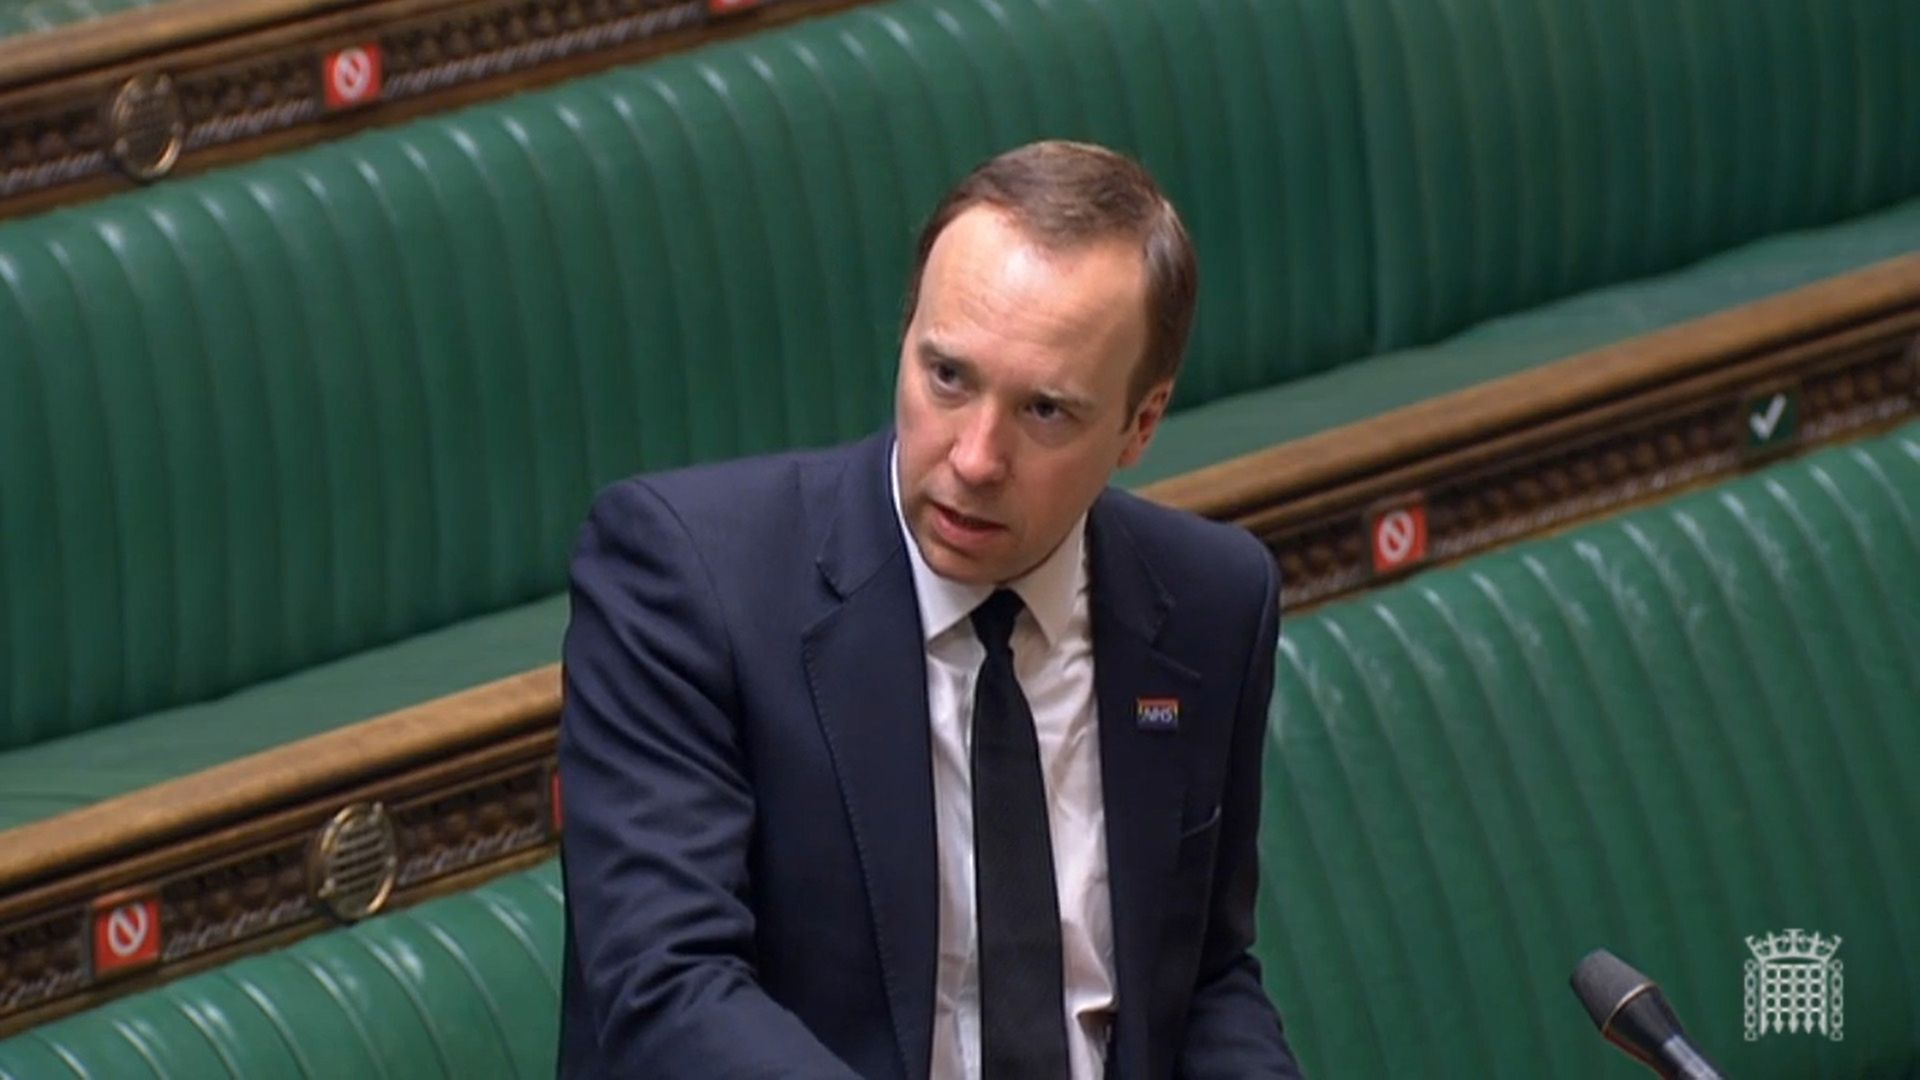 Health secretary Matt Hancock answering questions in the House of Commons. - Credit: PA